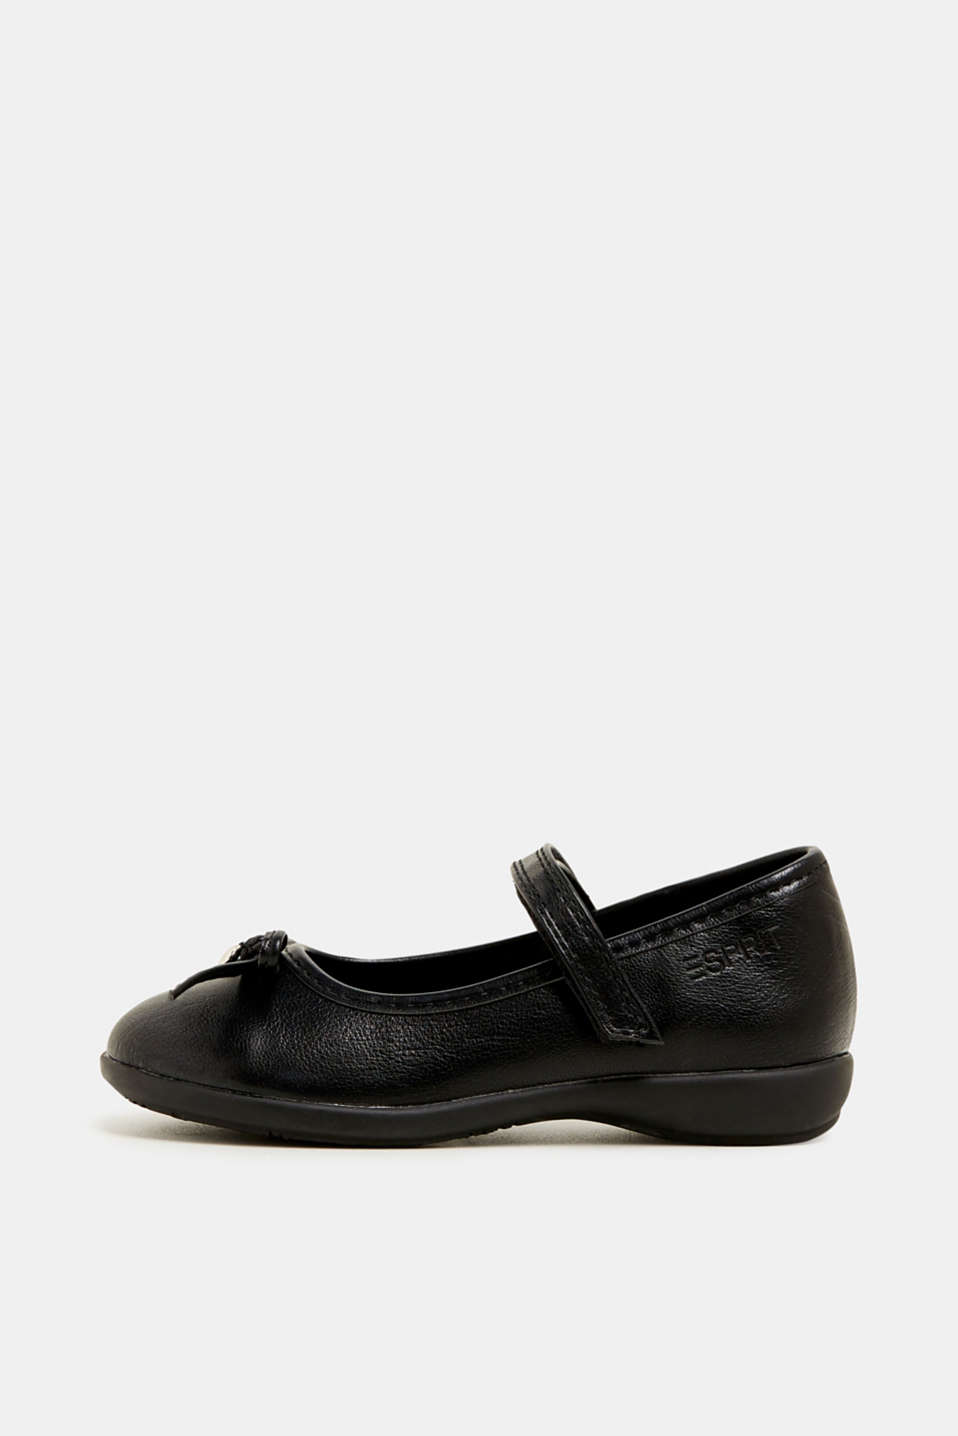 Esprit - Bow ballerinas with a rubber sole